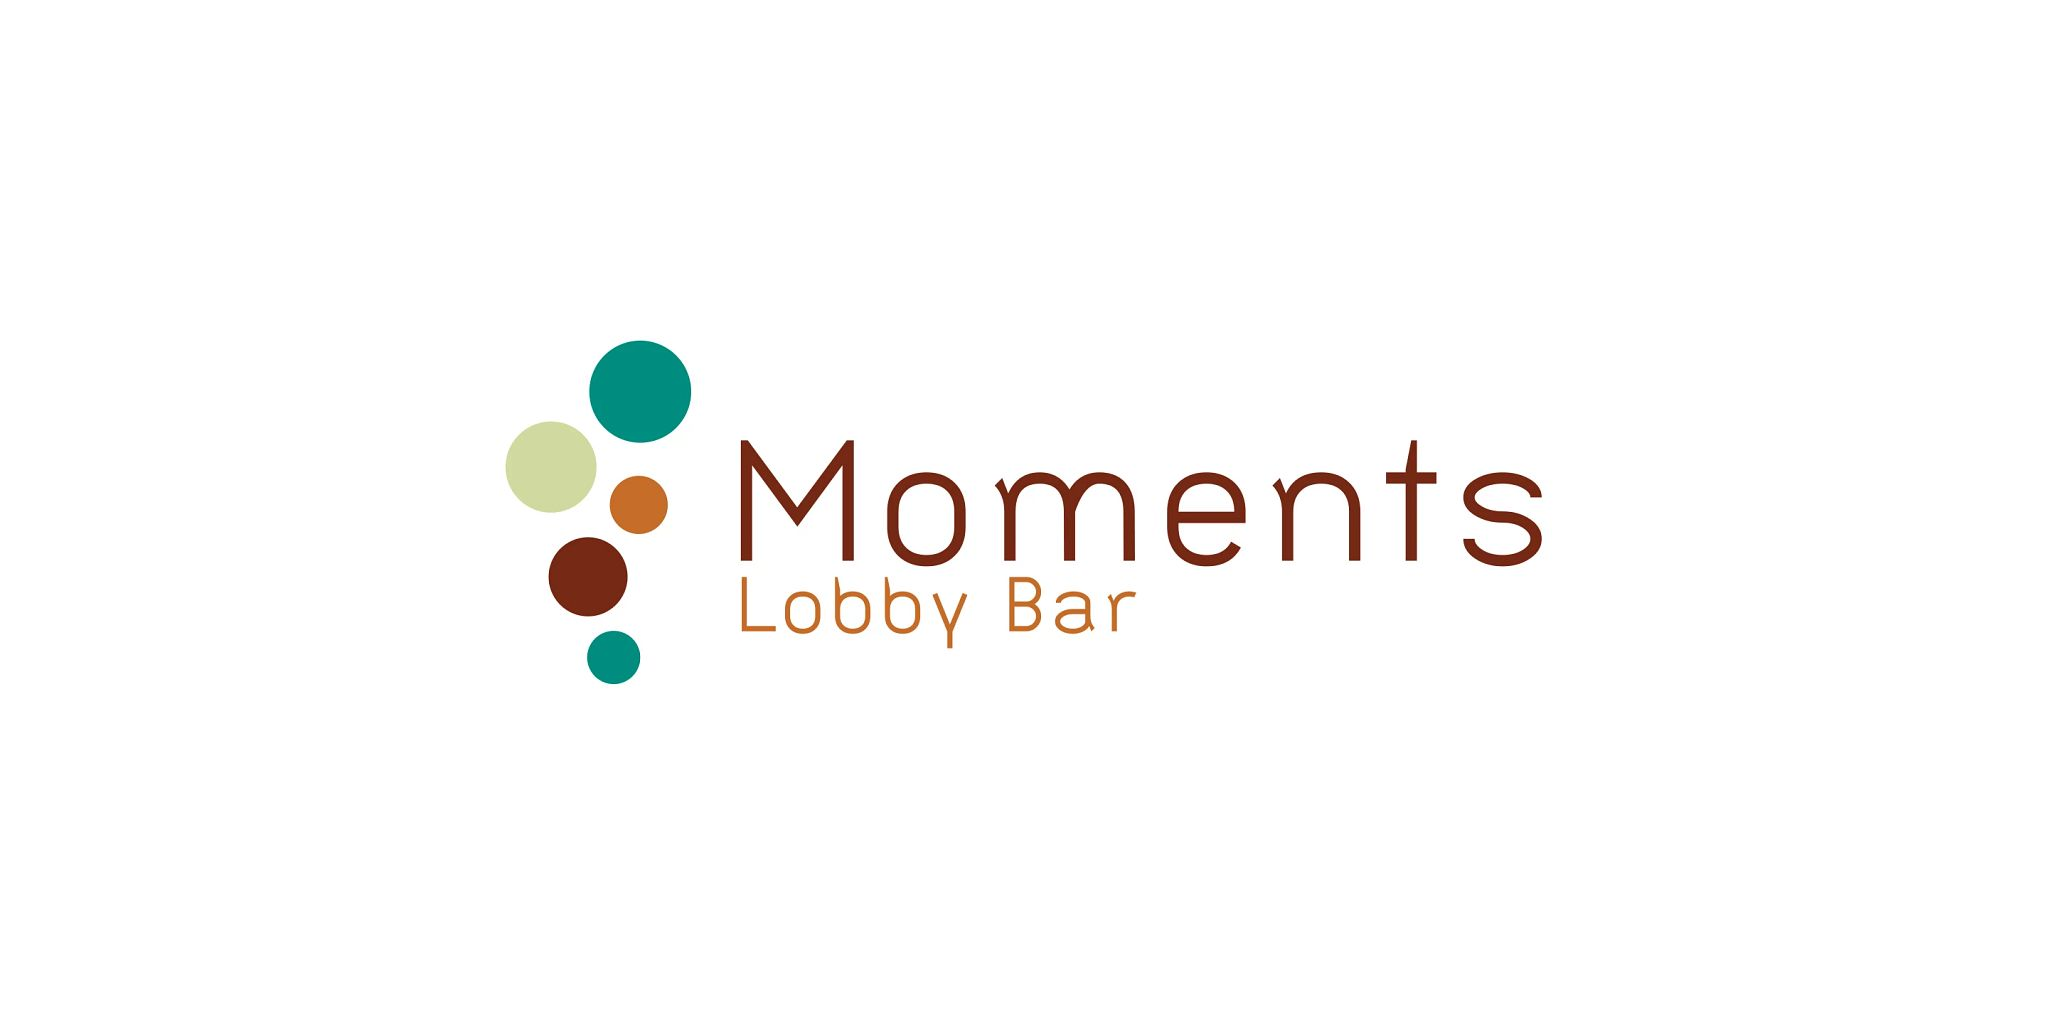 Moments Lobby Bar serving cocktails